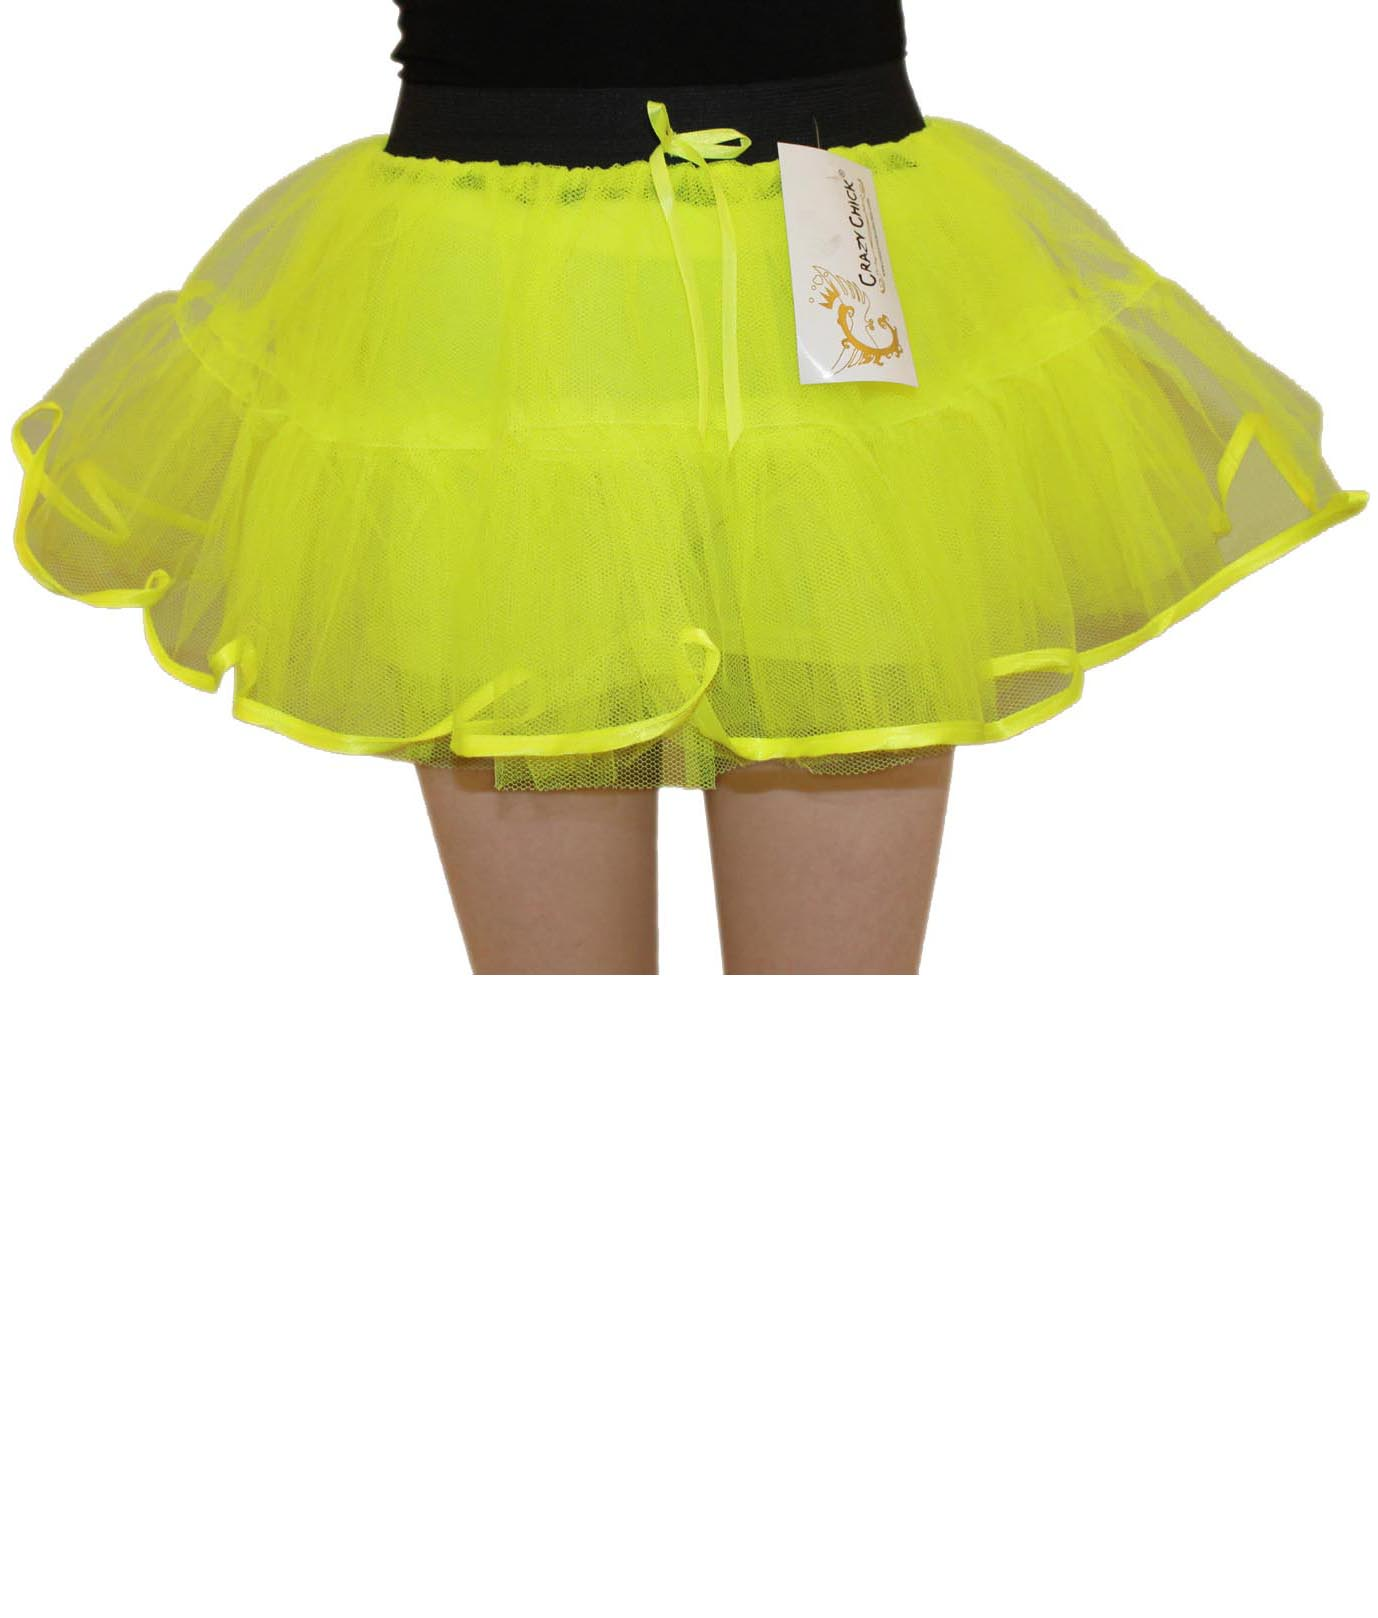 Crazy Chick Girls 4 Layers Yellow TuTu Skirt